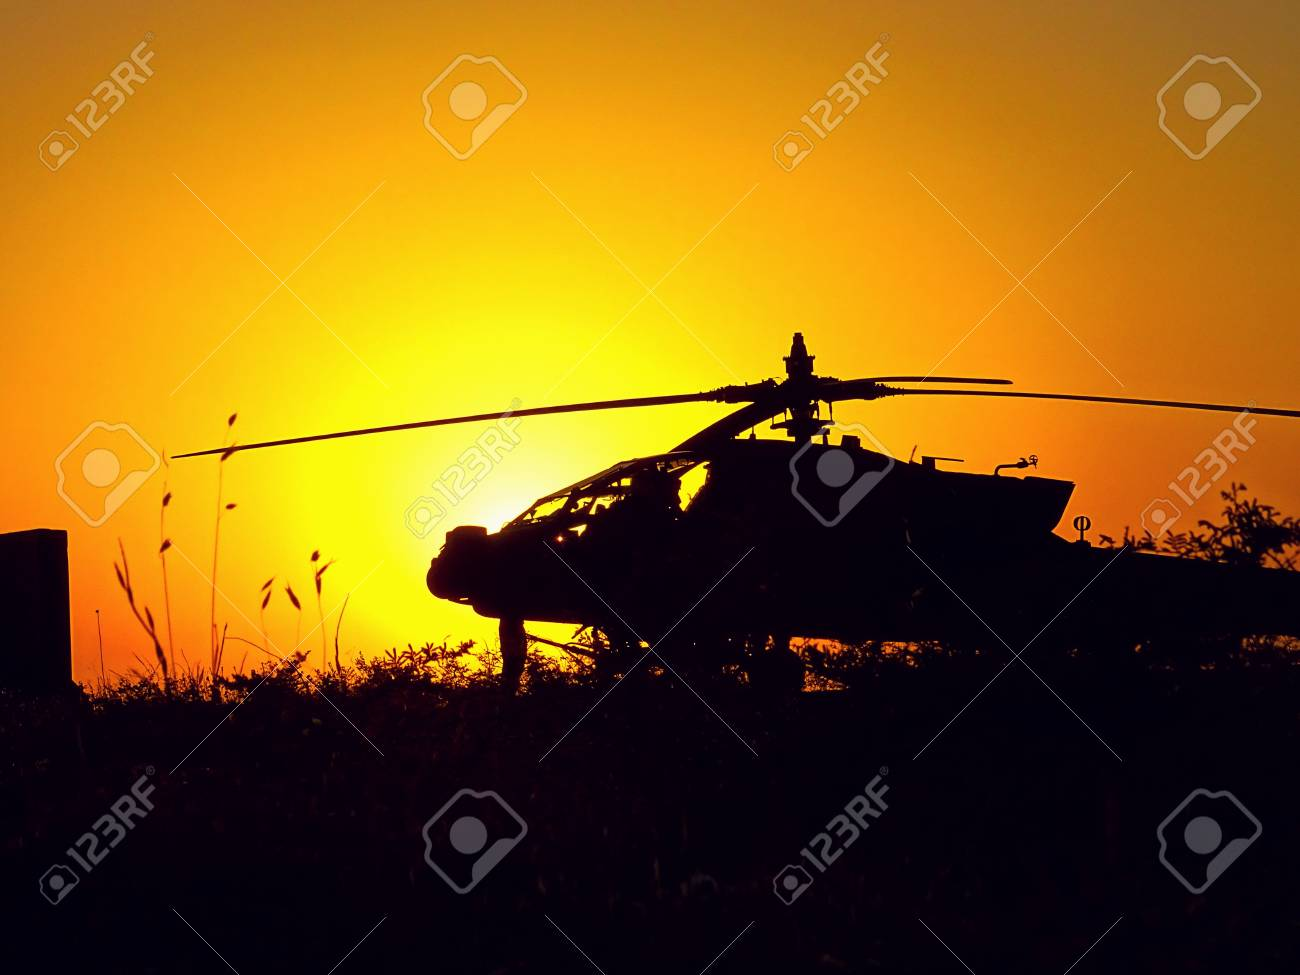 helicopter rests in the iraq sunset stock photo, picture and royalty